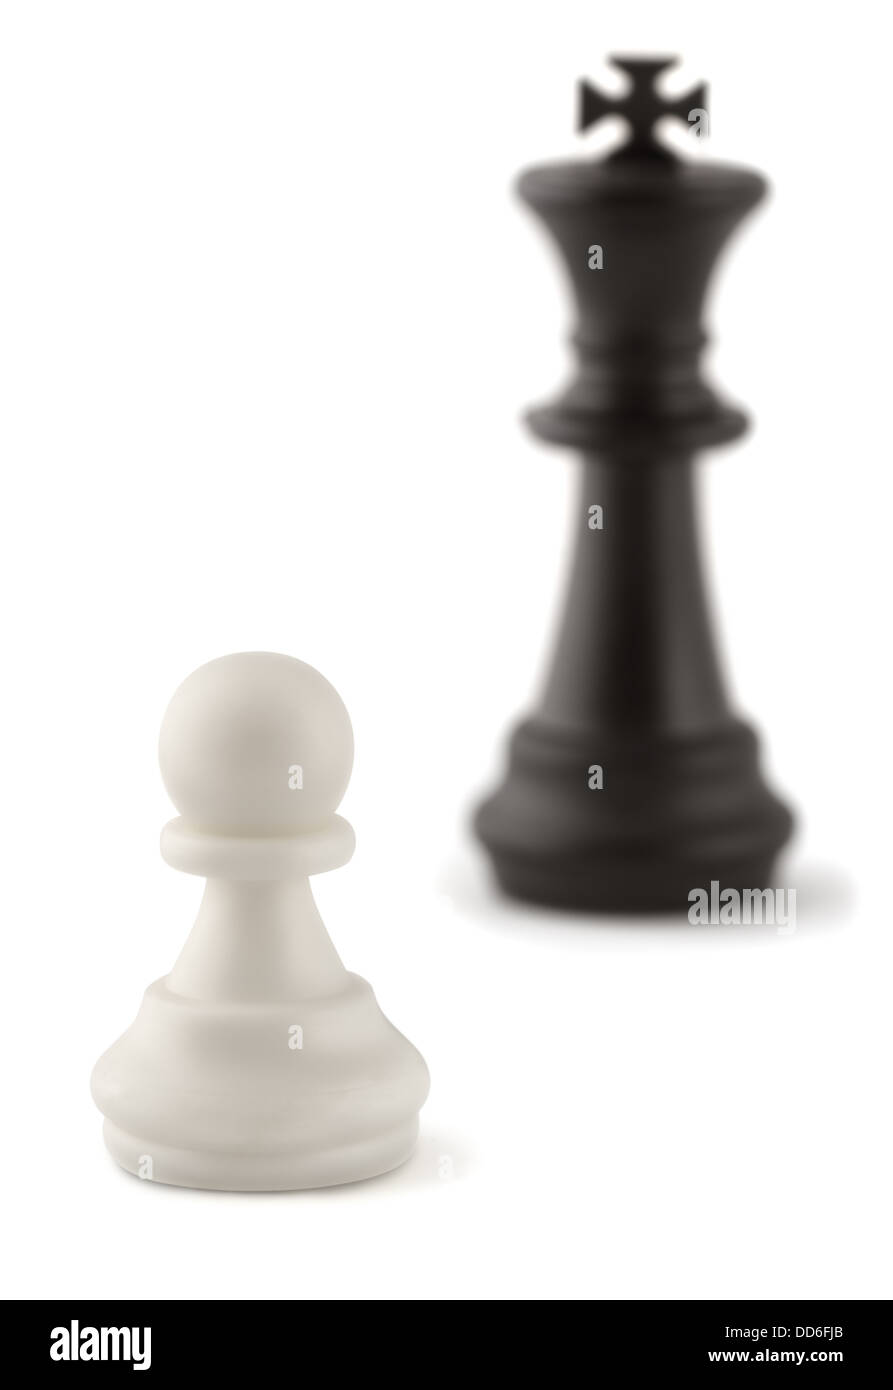 Chess combination - white pawn against black king - Stock Image